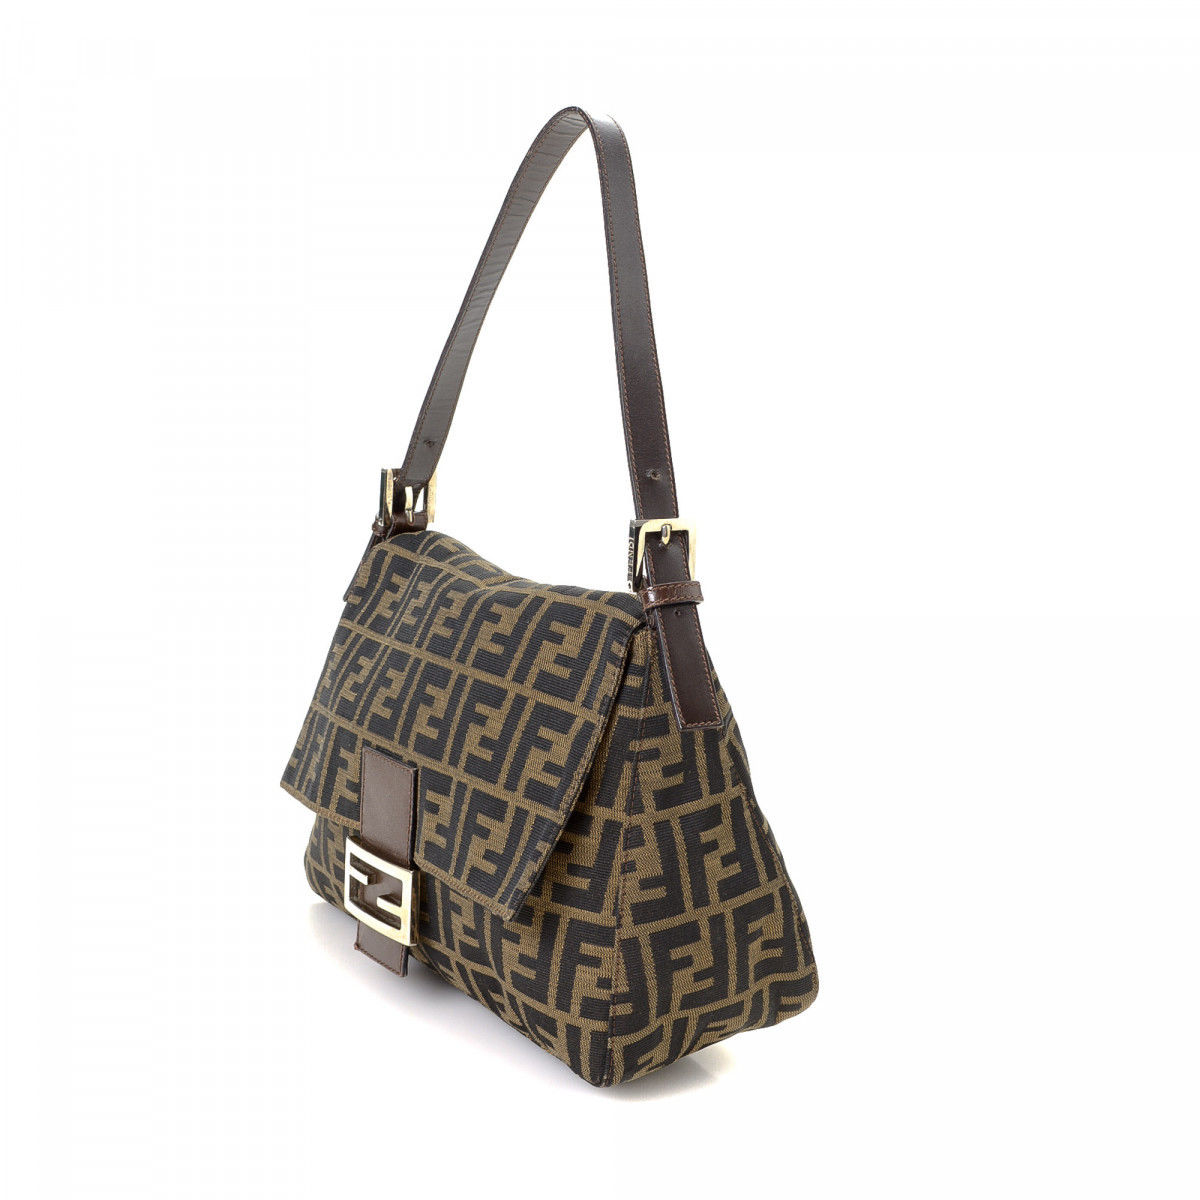 19e4ce29a724 Fendi Mamma Baguette. LXRandCo guarantees the authenticity of this vintage  Fendi Mamma Baguette shoulder bag.